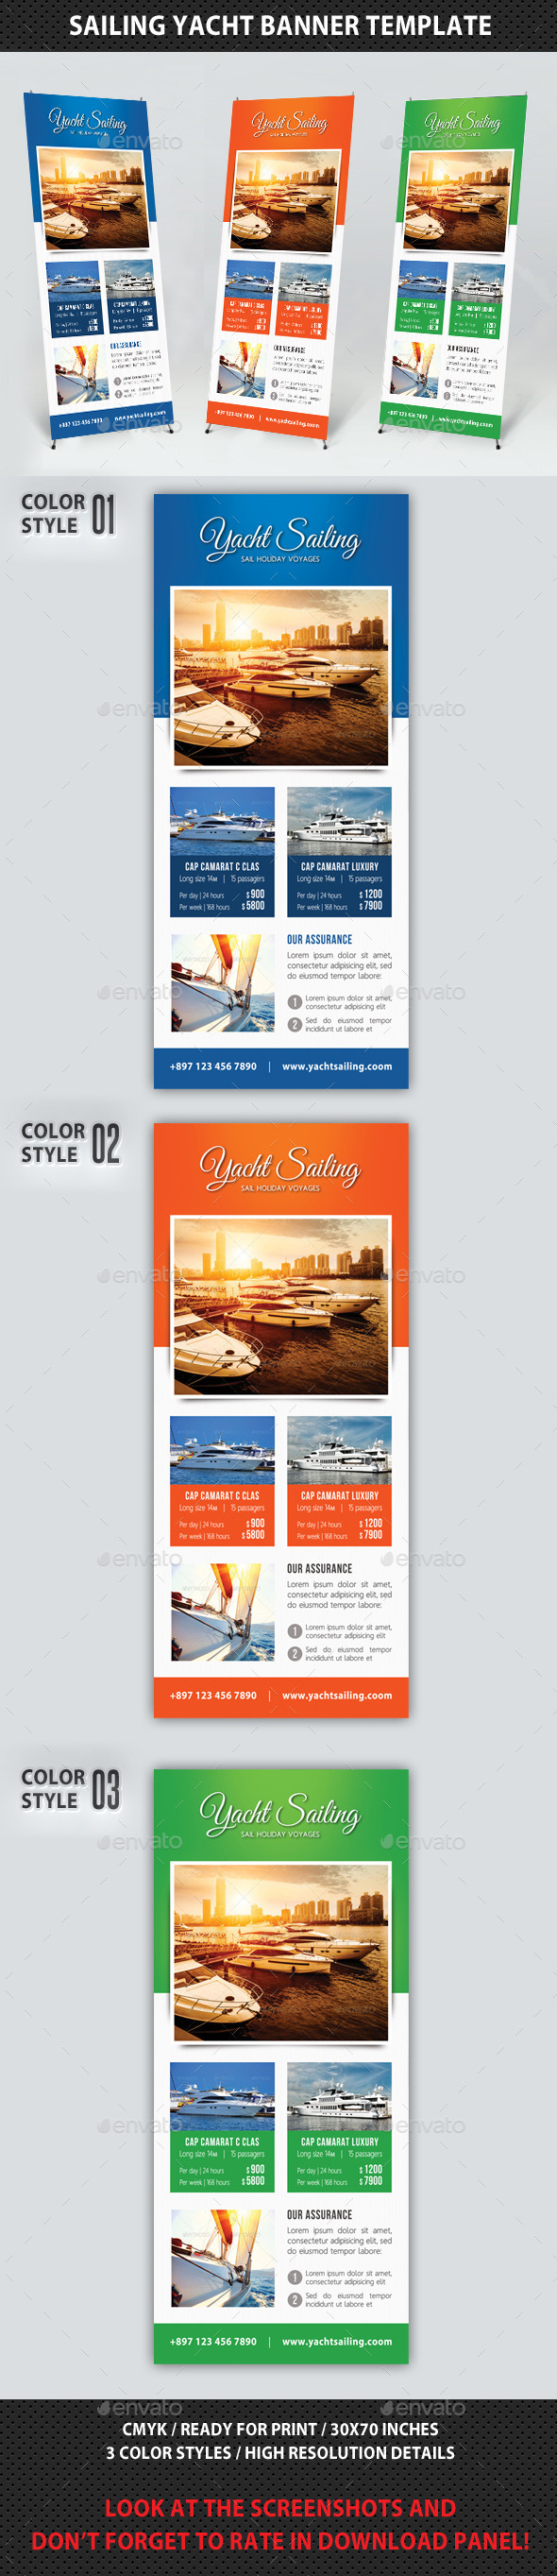 Sailing Yacht Banner Template 03 - Signage Print Templates